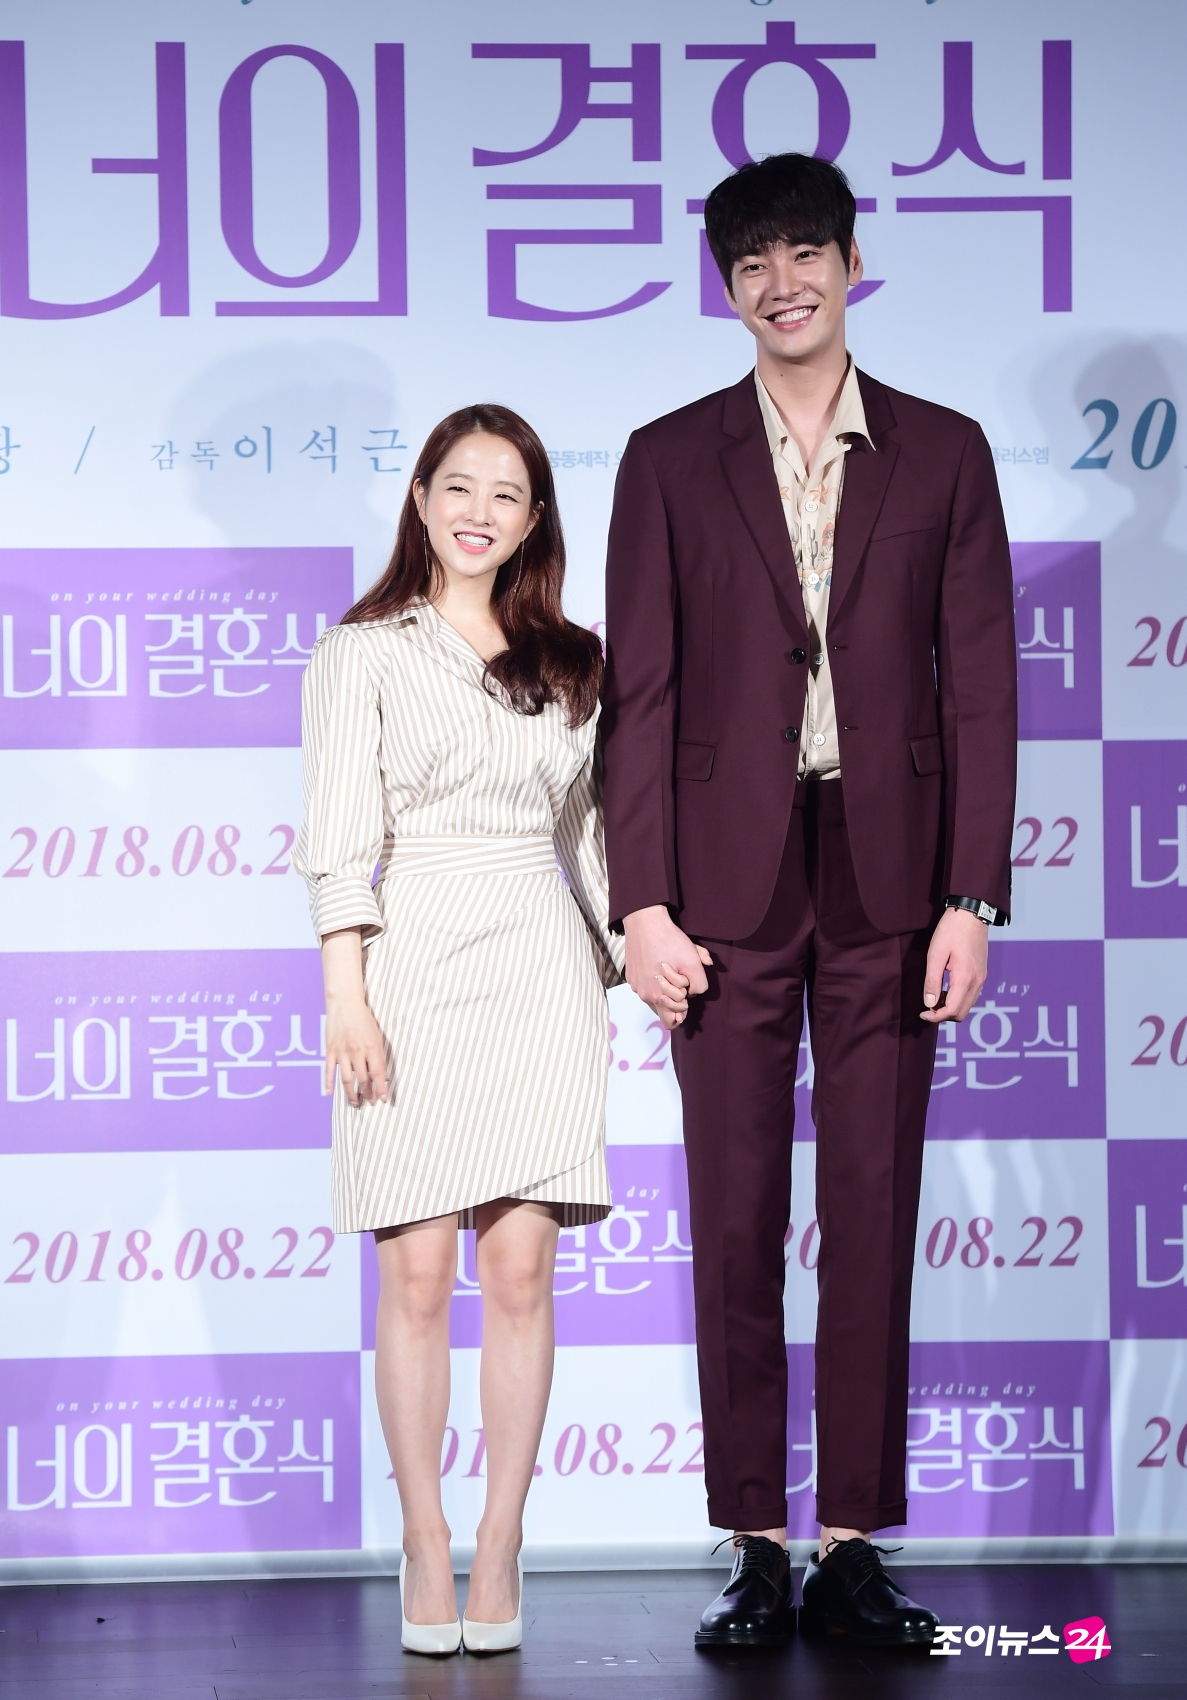 <p><></p><p>Actors Park Bo - young and Kim Young - kwang participated in the movie Your Wedding (director Isocukun) production meeting held at Seoul Mega Box Dongdaemun store on the morning of February 23 and have photo time.</p><p>Your wedding ceremony will be released on August 22, coming in a romance movie depicting the destroyed first love chronicle of Seung Hee (Park Bo-young) and Seung Hee believing in destiny (Kim Young-kwang) .</p>